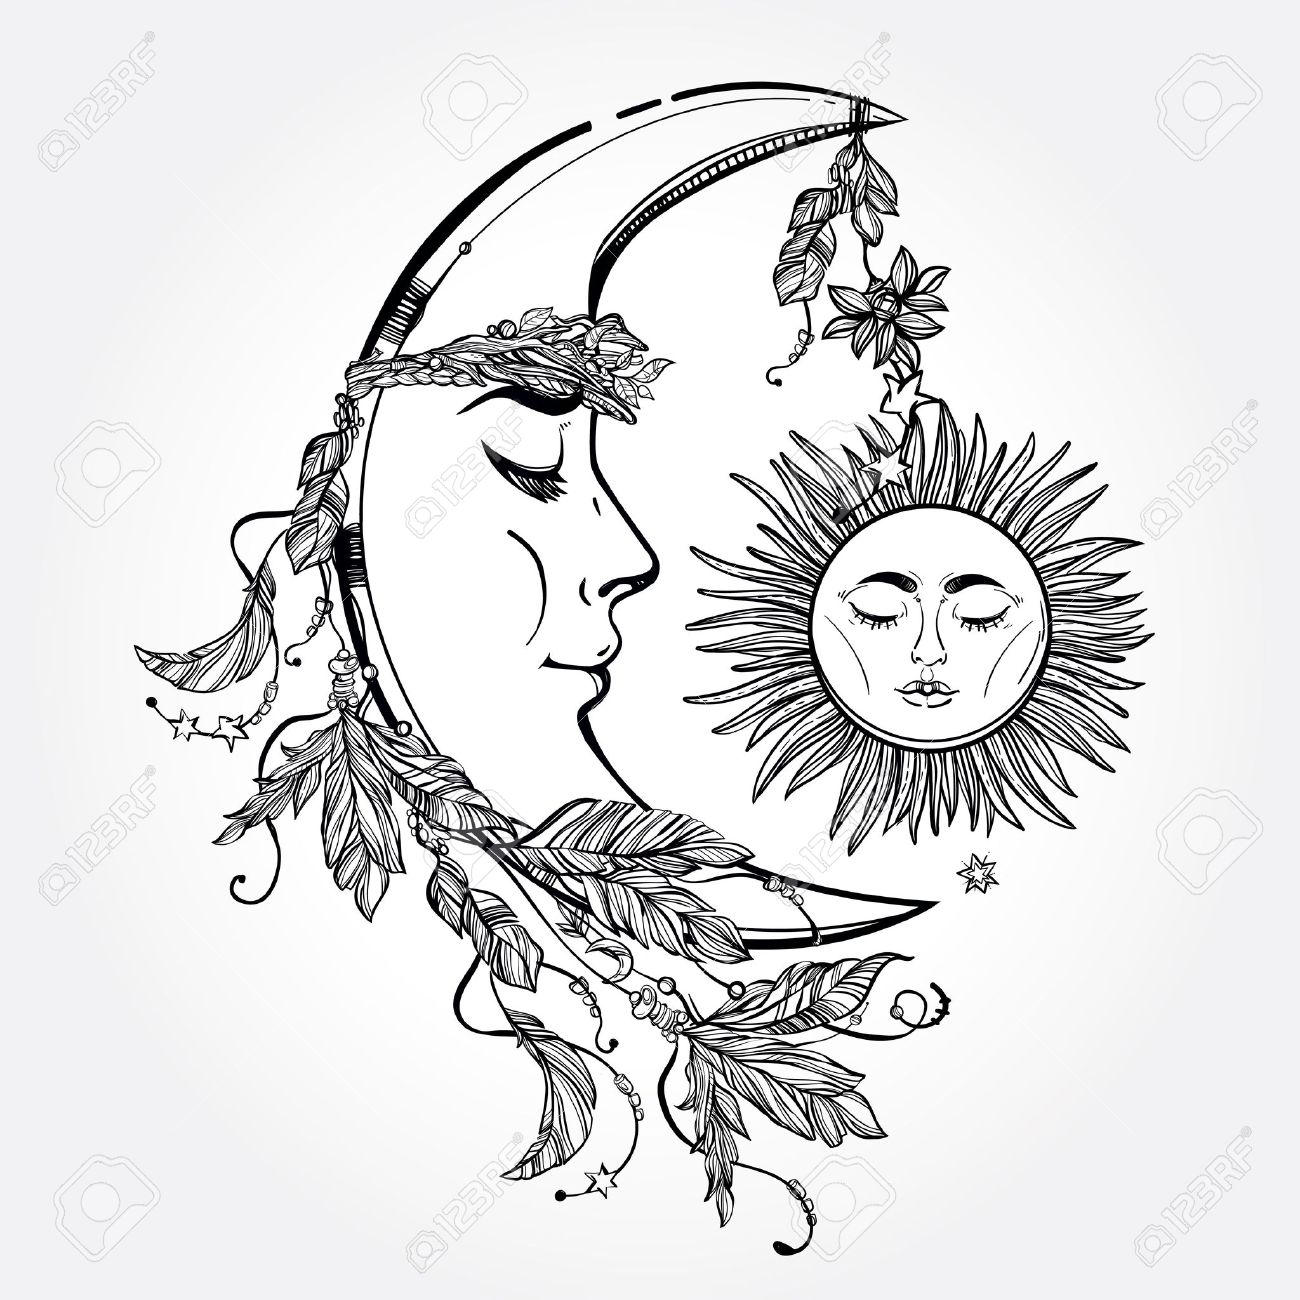 Hand drawn crescent moon with feathers and in the crown of leaves and sticks. Sleeping sun next to it. Isolated Vector illustration. Invitation element. Tattoo, astrology, alchemy, magic symbol. Stock Vector - 46342446